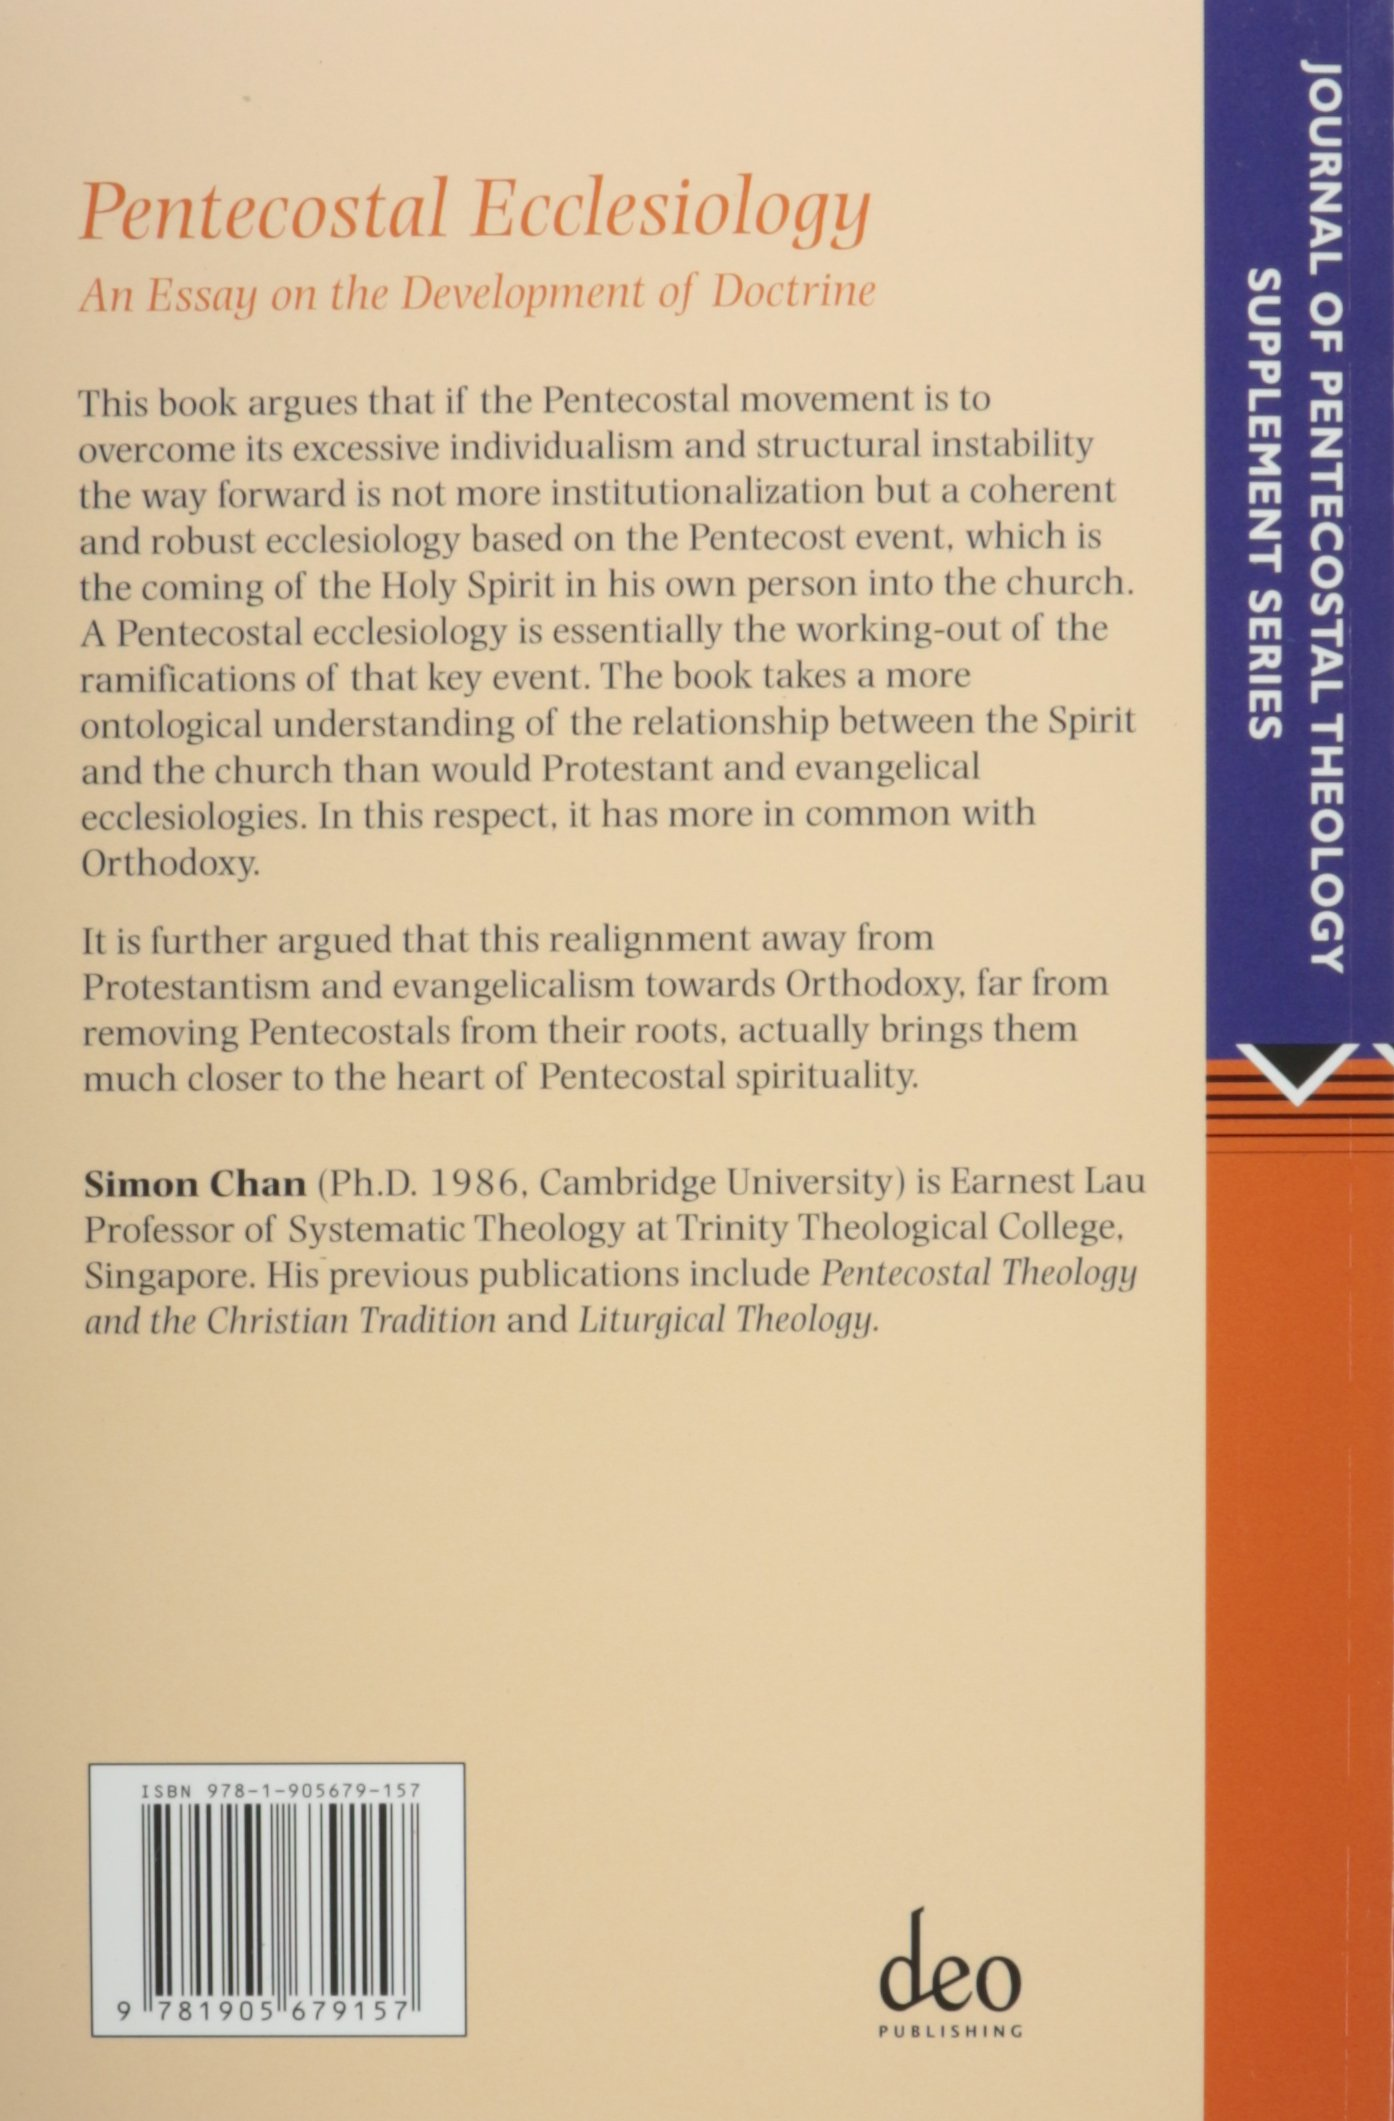 pentecostal ecclesiology an essay on the development of doctrine pentecostal ecclesiology an essay on the development of doctrine journal of pentecostal theology supplement series simon chan 9781905679157